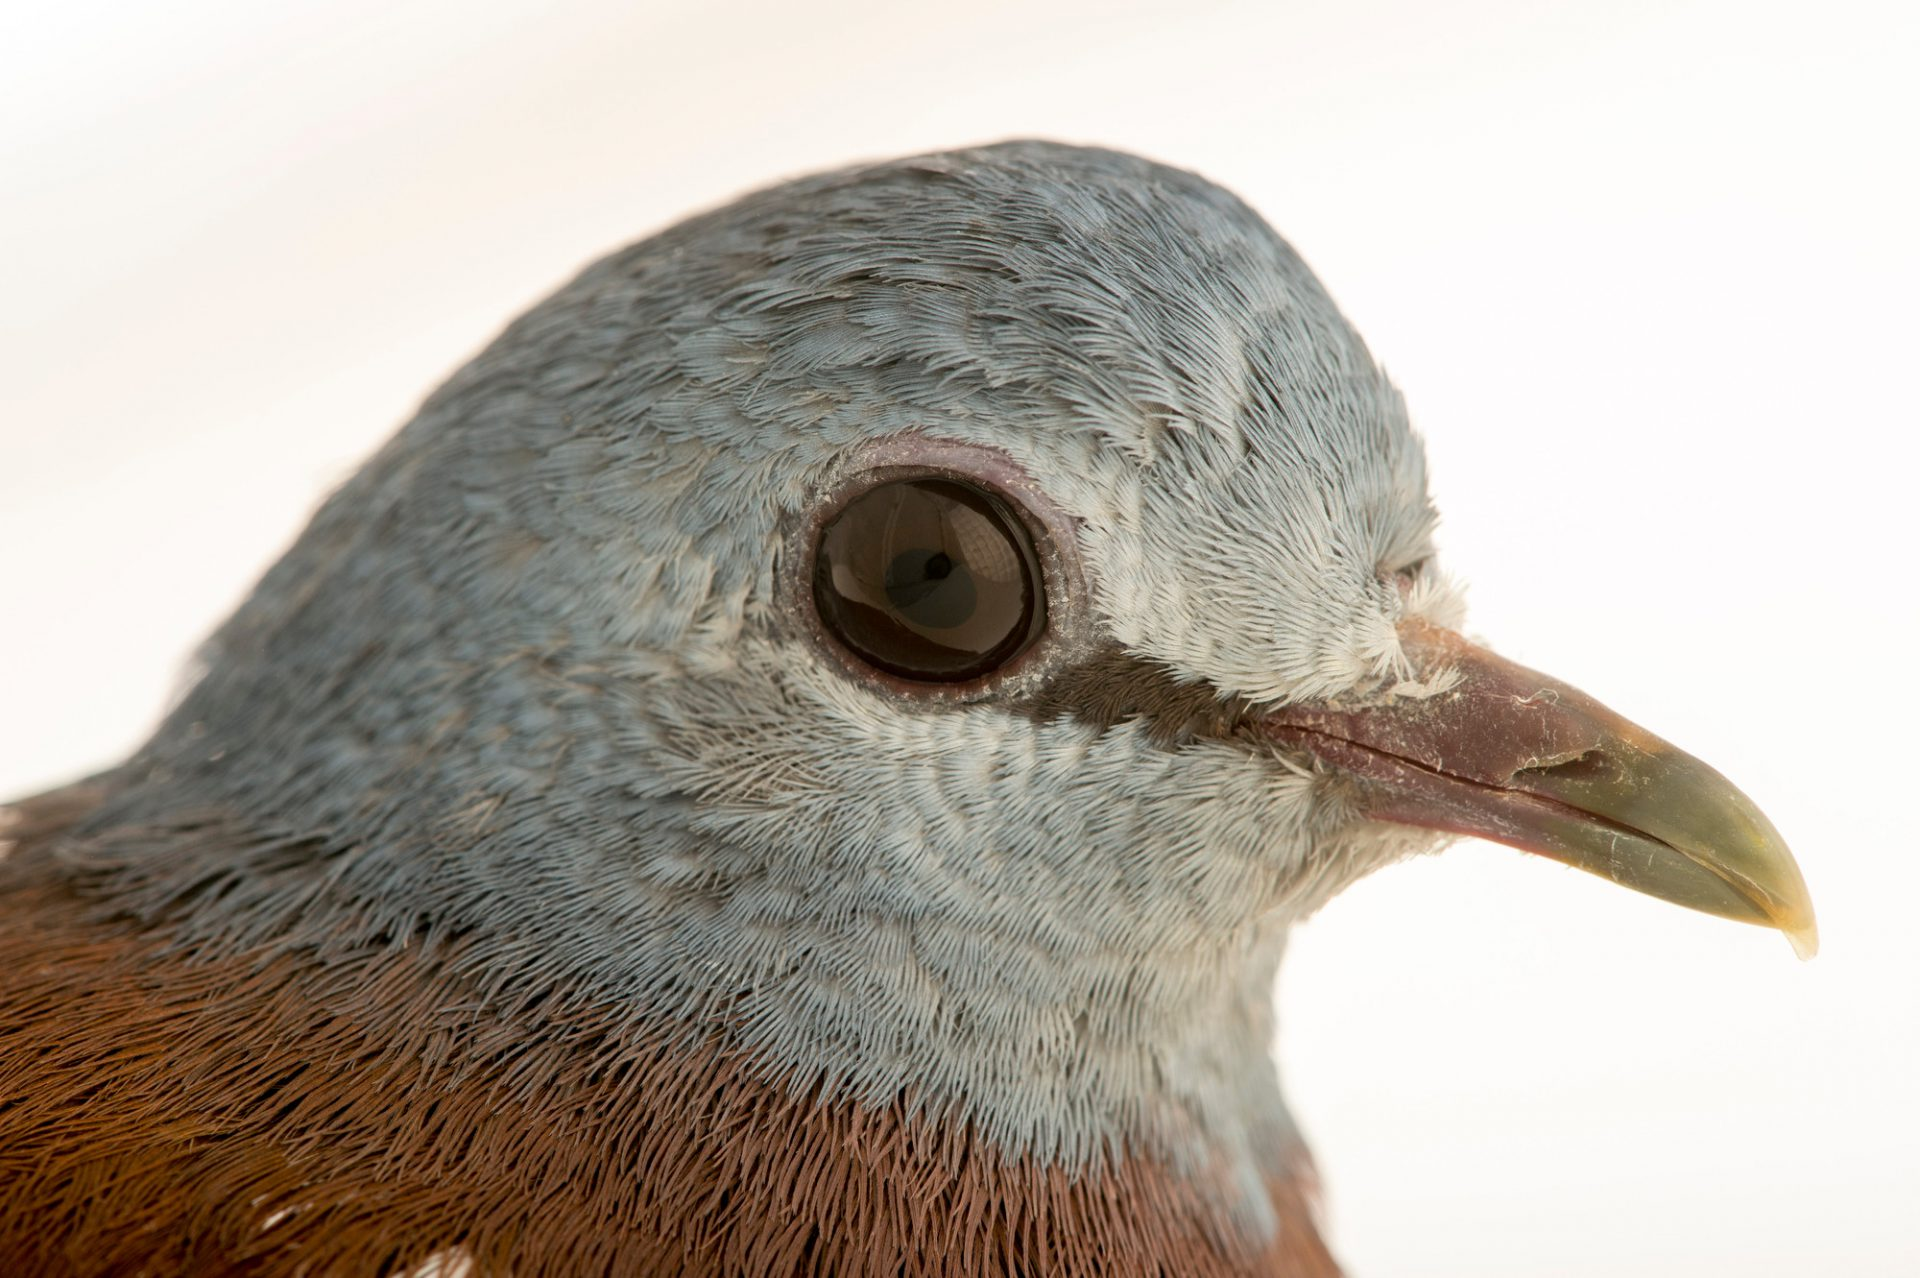 Photo: A blue headed wood dove (Turtur brehmeri) at the Plzen Zoo.